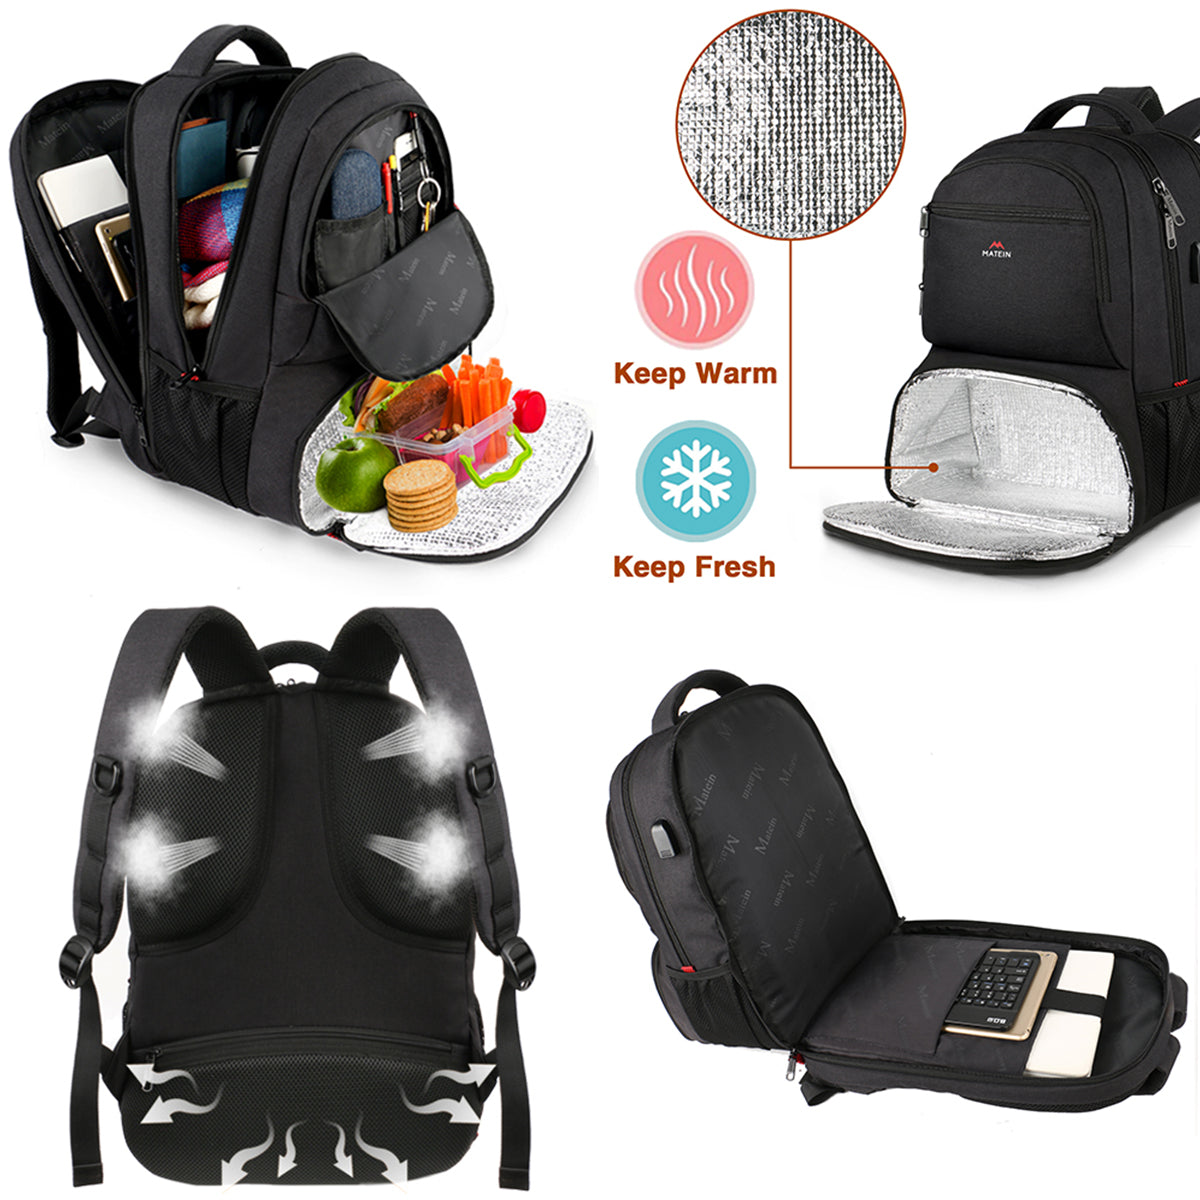 Matein Cooler Backpack Lunchbox